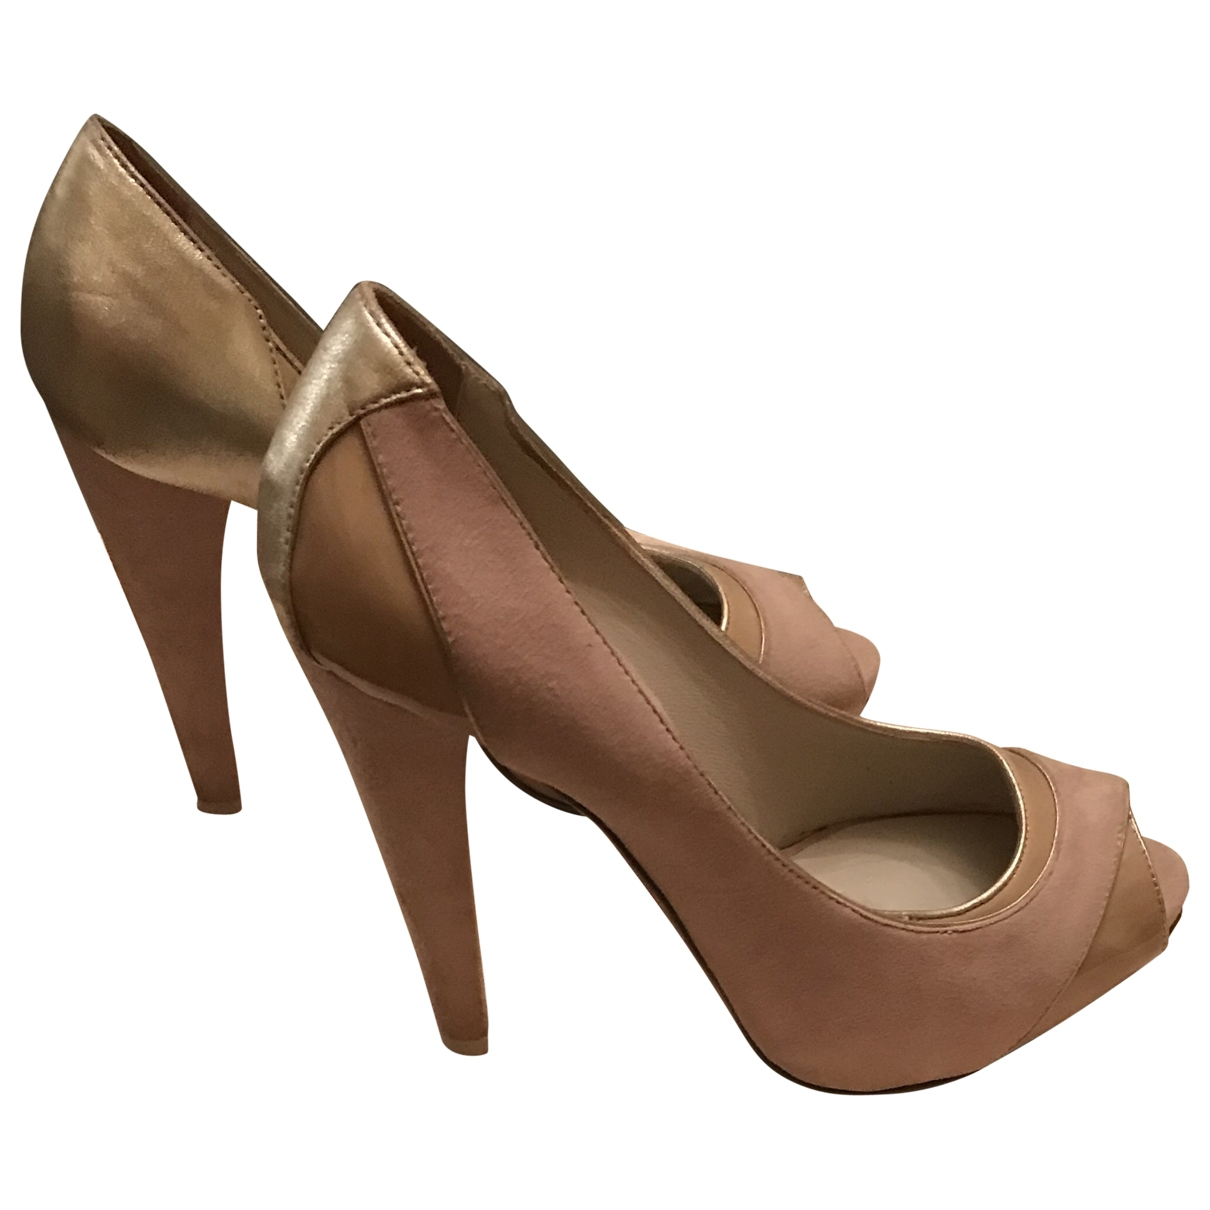 Emporio Armani \N Pink Suede Heels for Women 36.5 IT